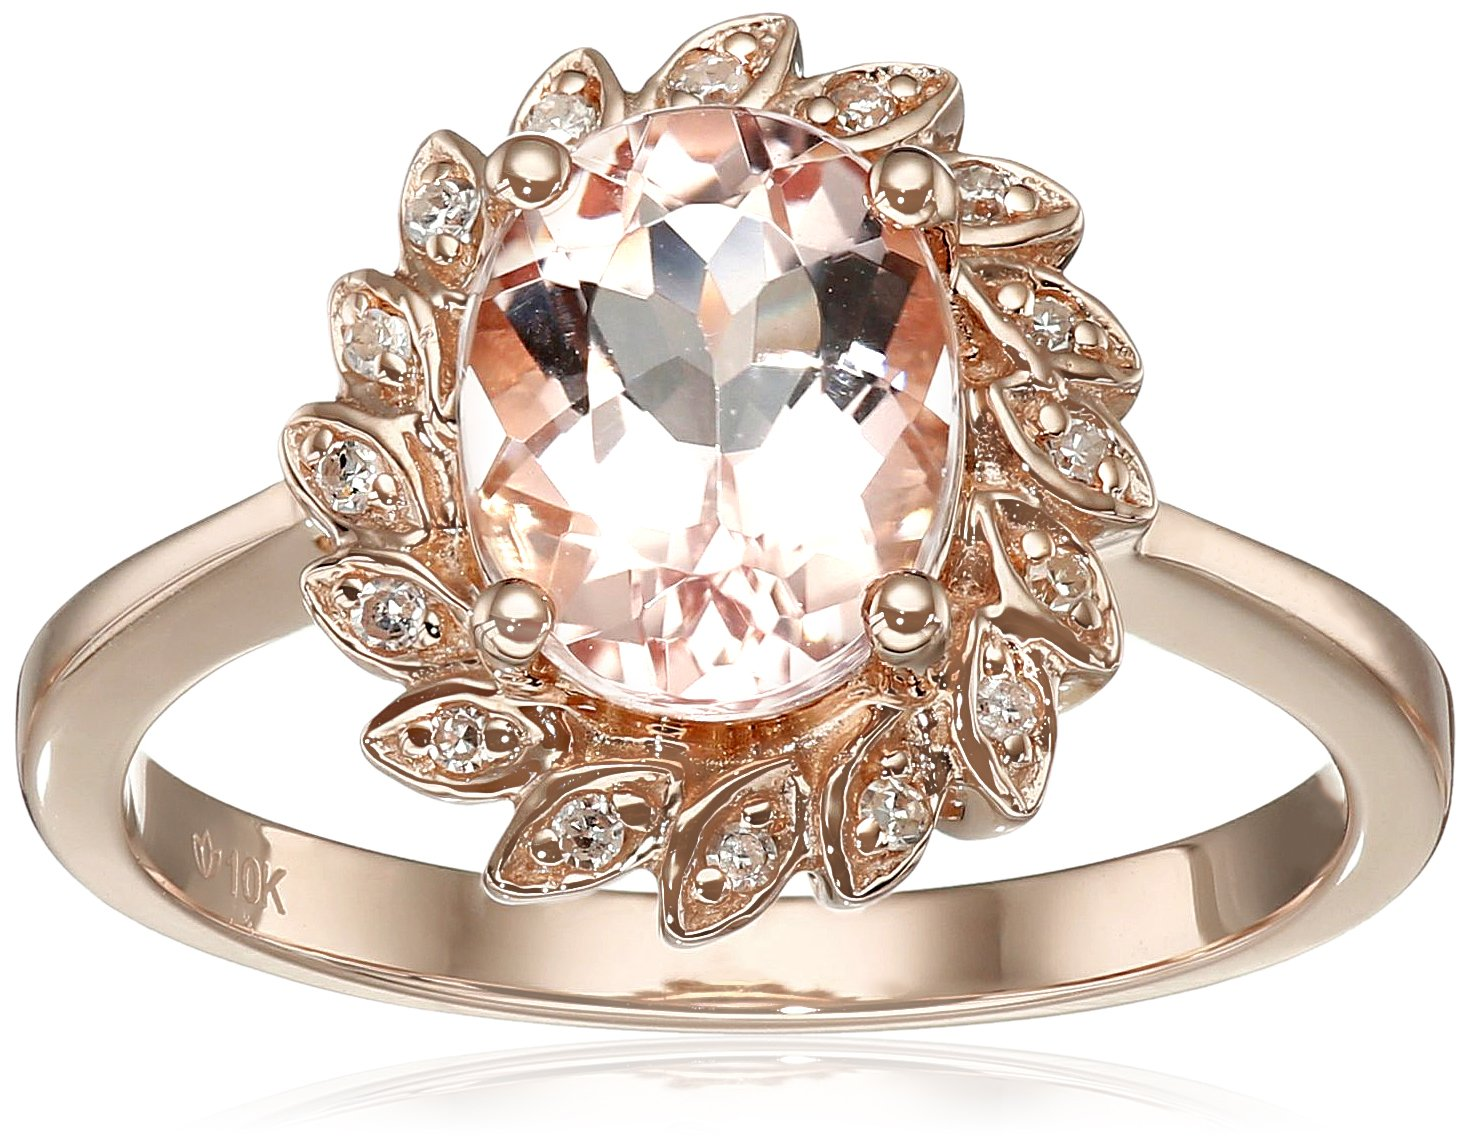 10k Rose Gold Morganite and Diamond Flower Halo Ring (0.07 cttw, H-I Color, I1-I2 Clarity), Size 7